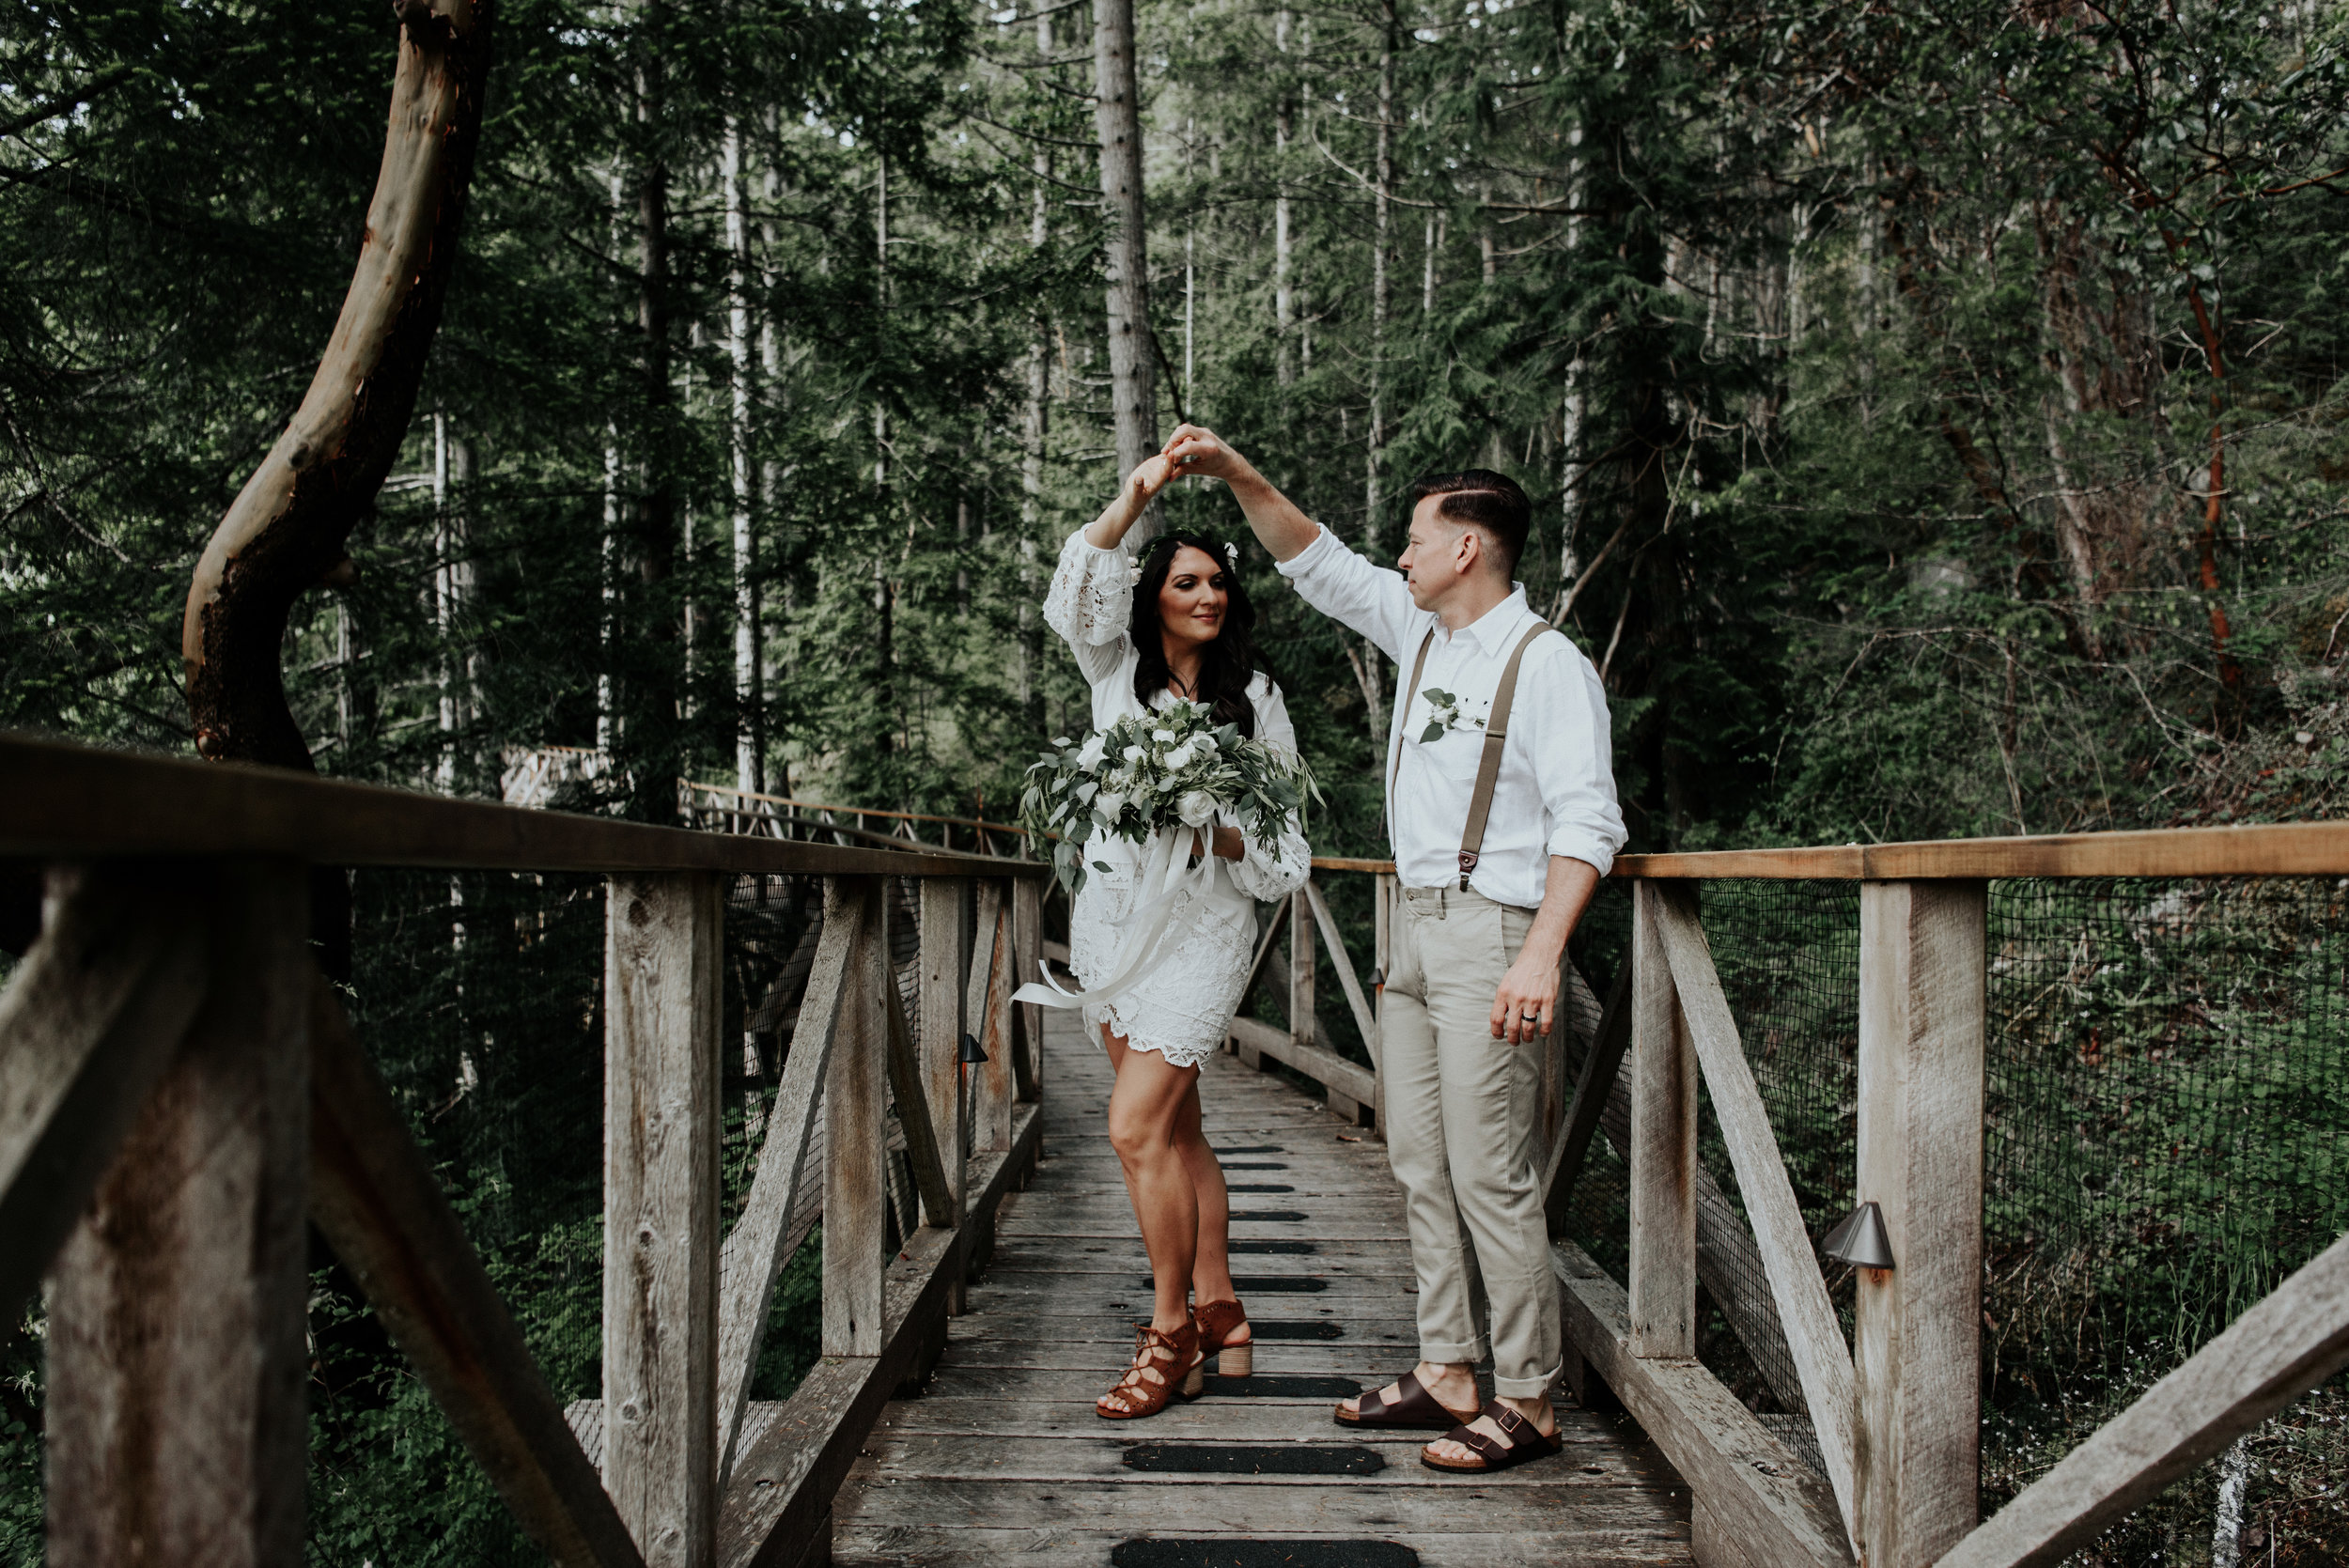 Ashley + Jeff - Rockwater Resort Elopement - Sunshine Coast BC Photographer - Laura Olson Photography-3944.jpg